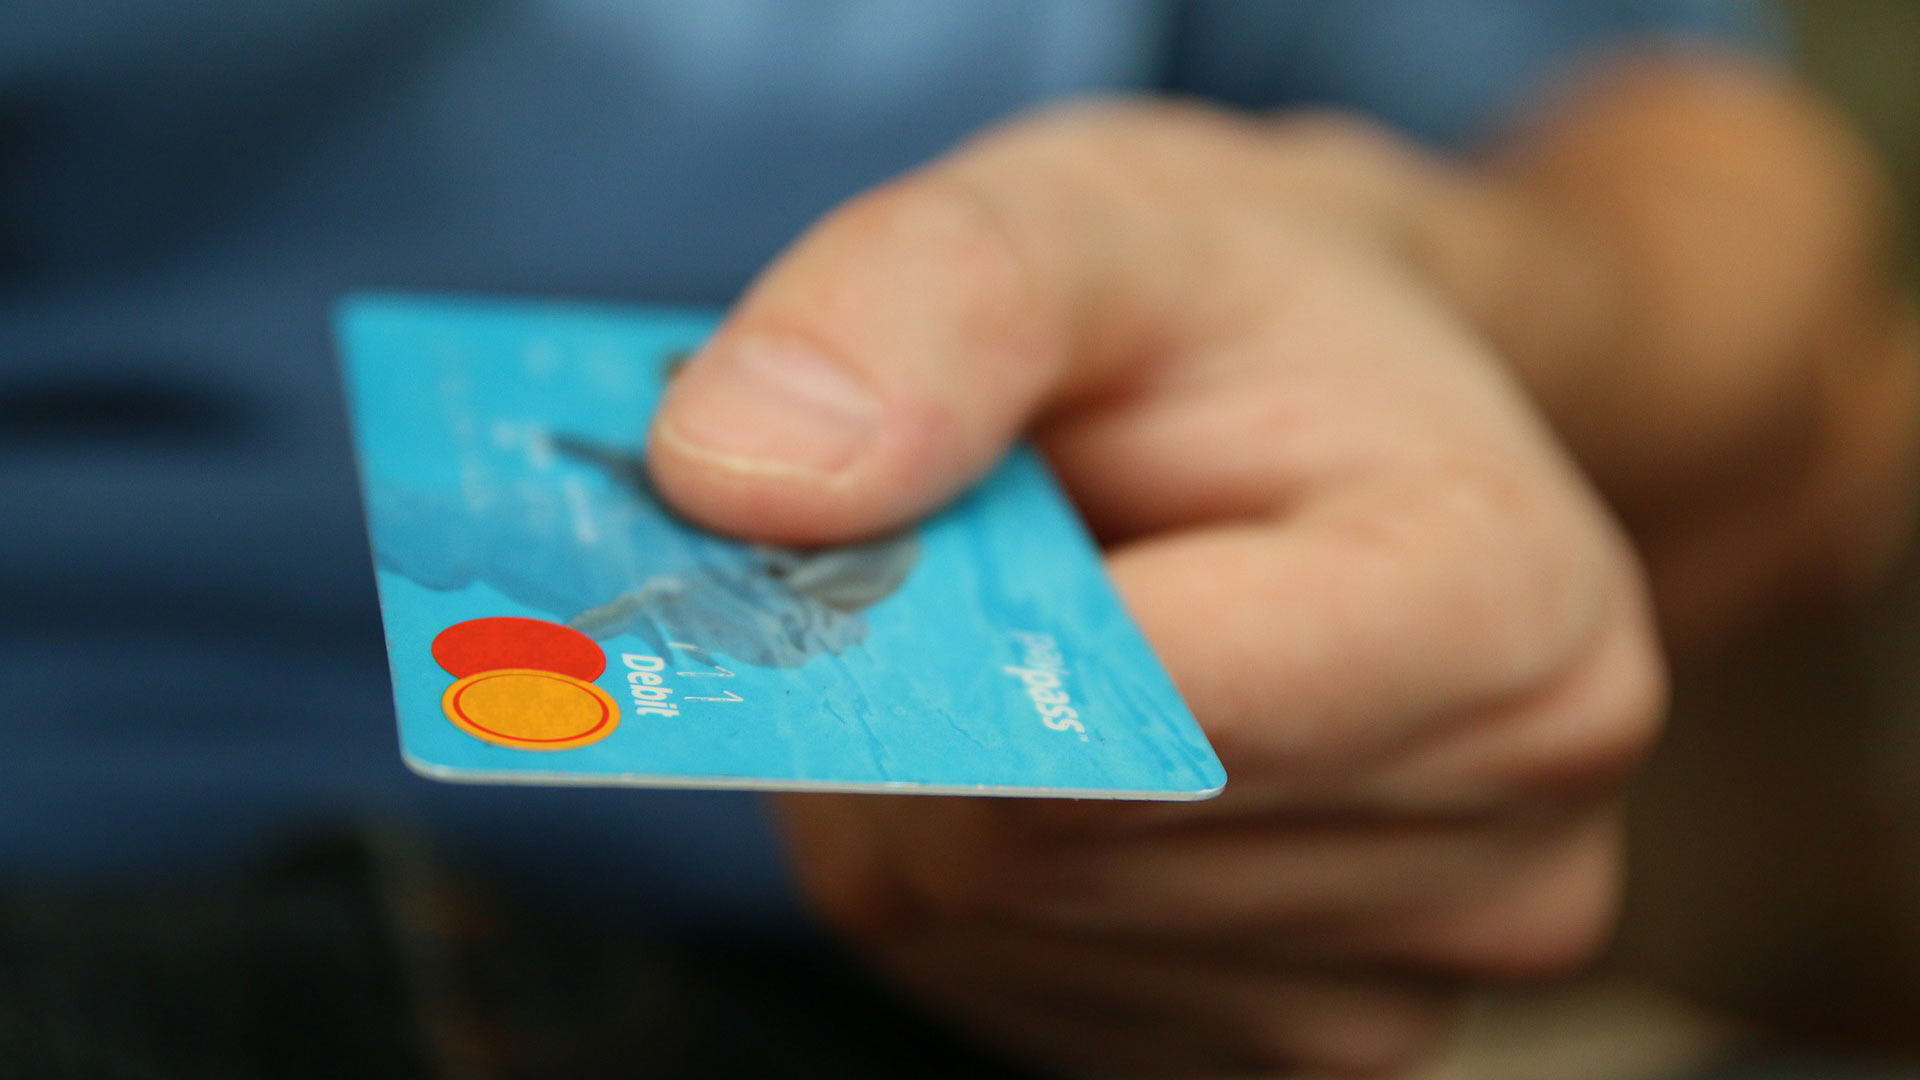 Many scams ask for credit card info.